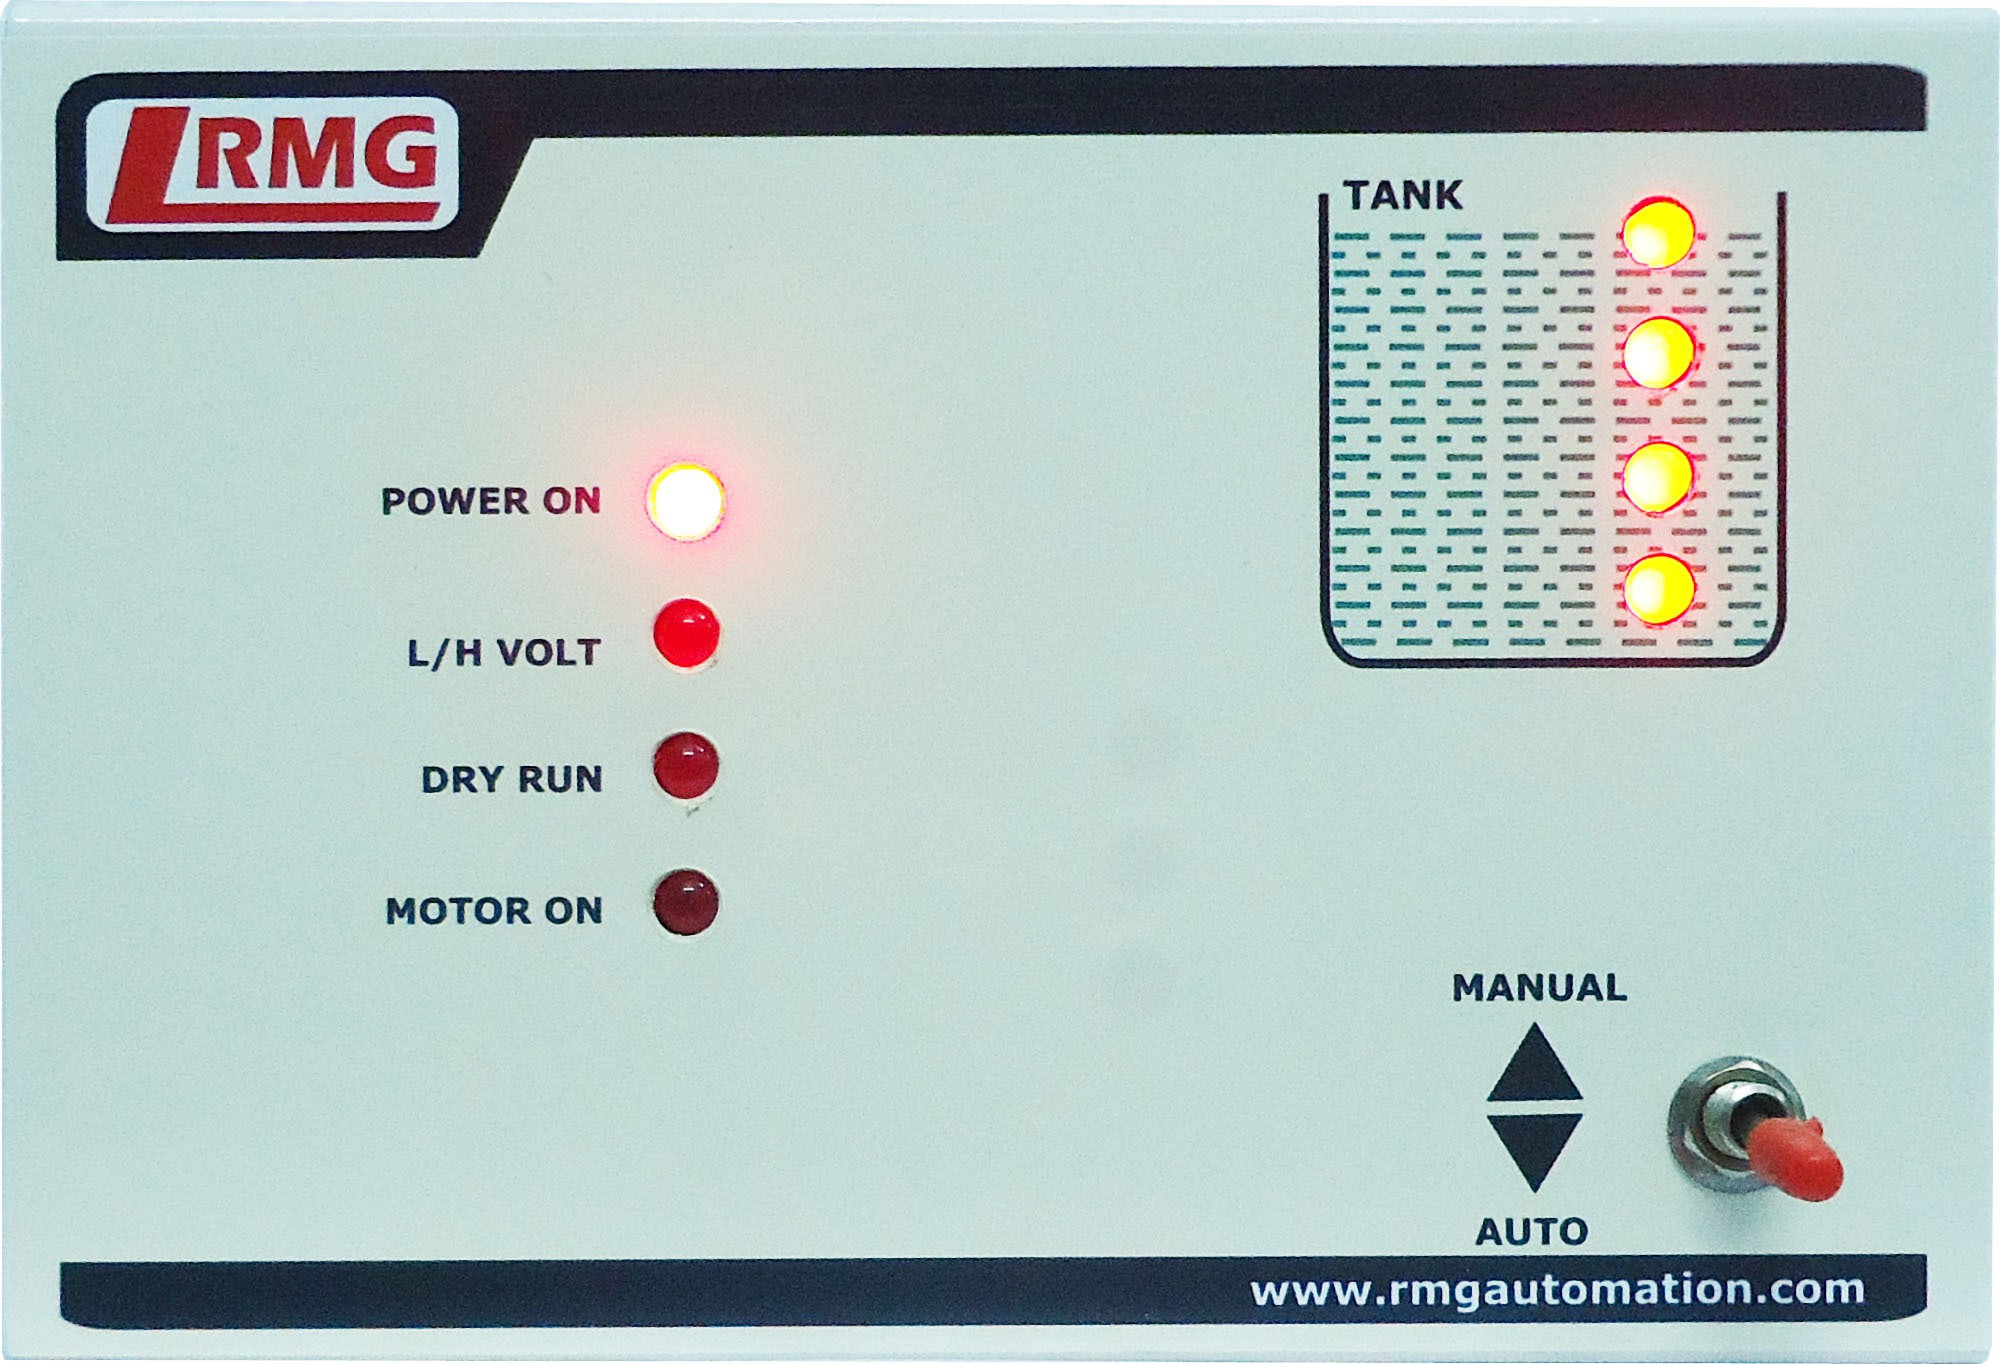 View Rmg Fully Automatic Water Level Controller with Indicator for Motor Pump Operated by Starter upto 1.5 HP - Tank only Wired Sensor Security System Home Appliances Price Online(Rmg)